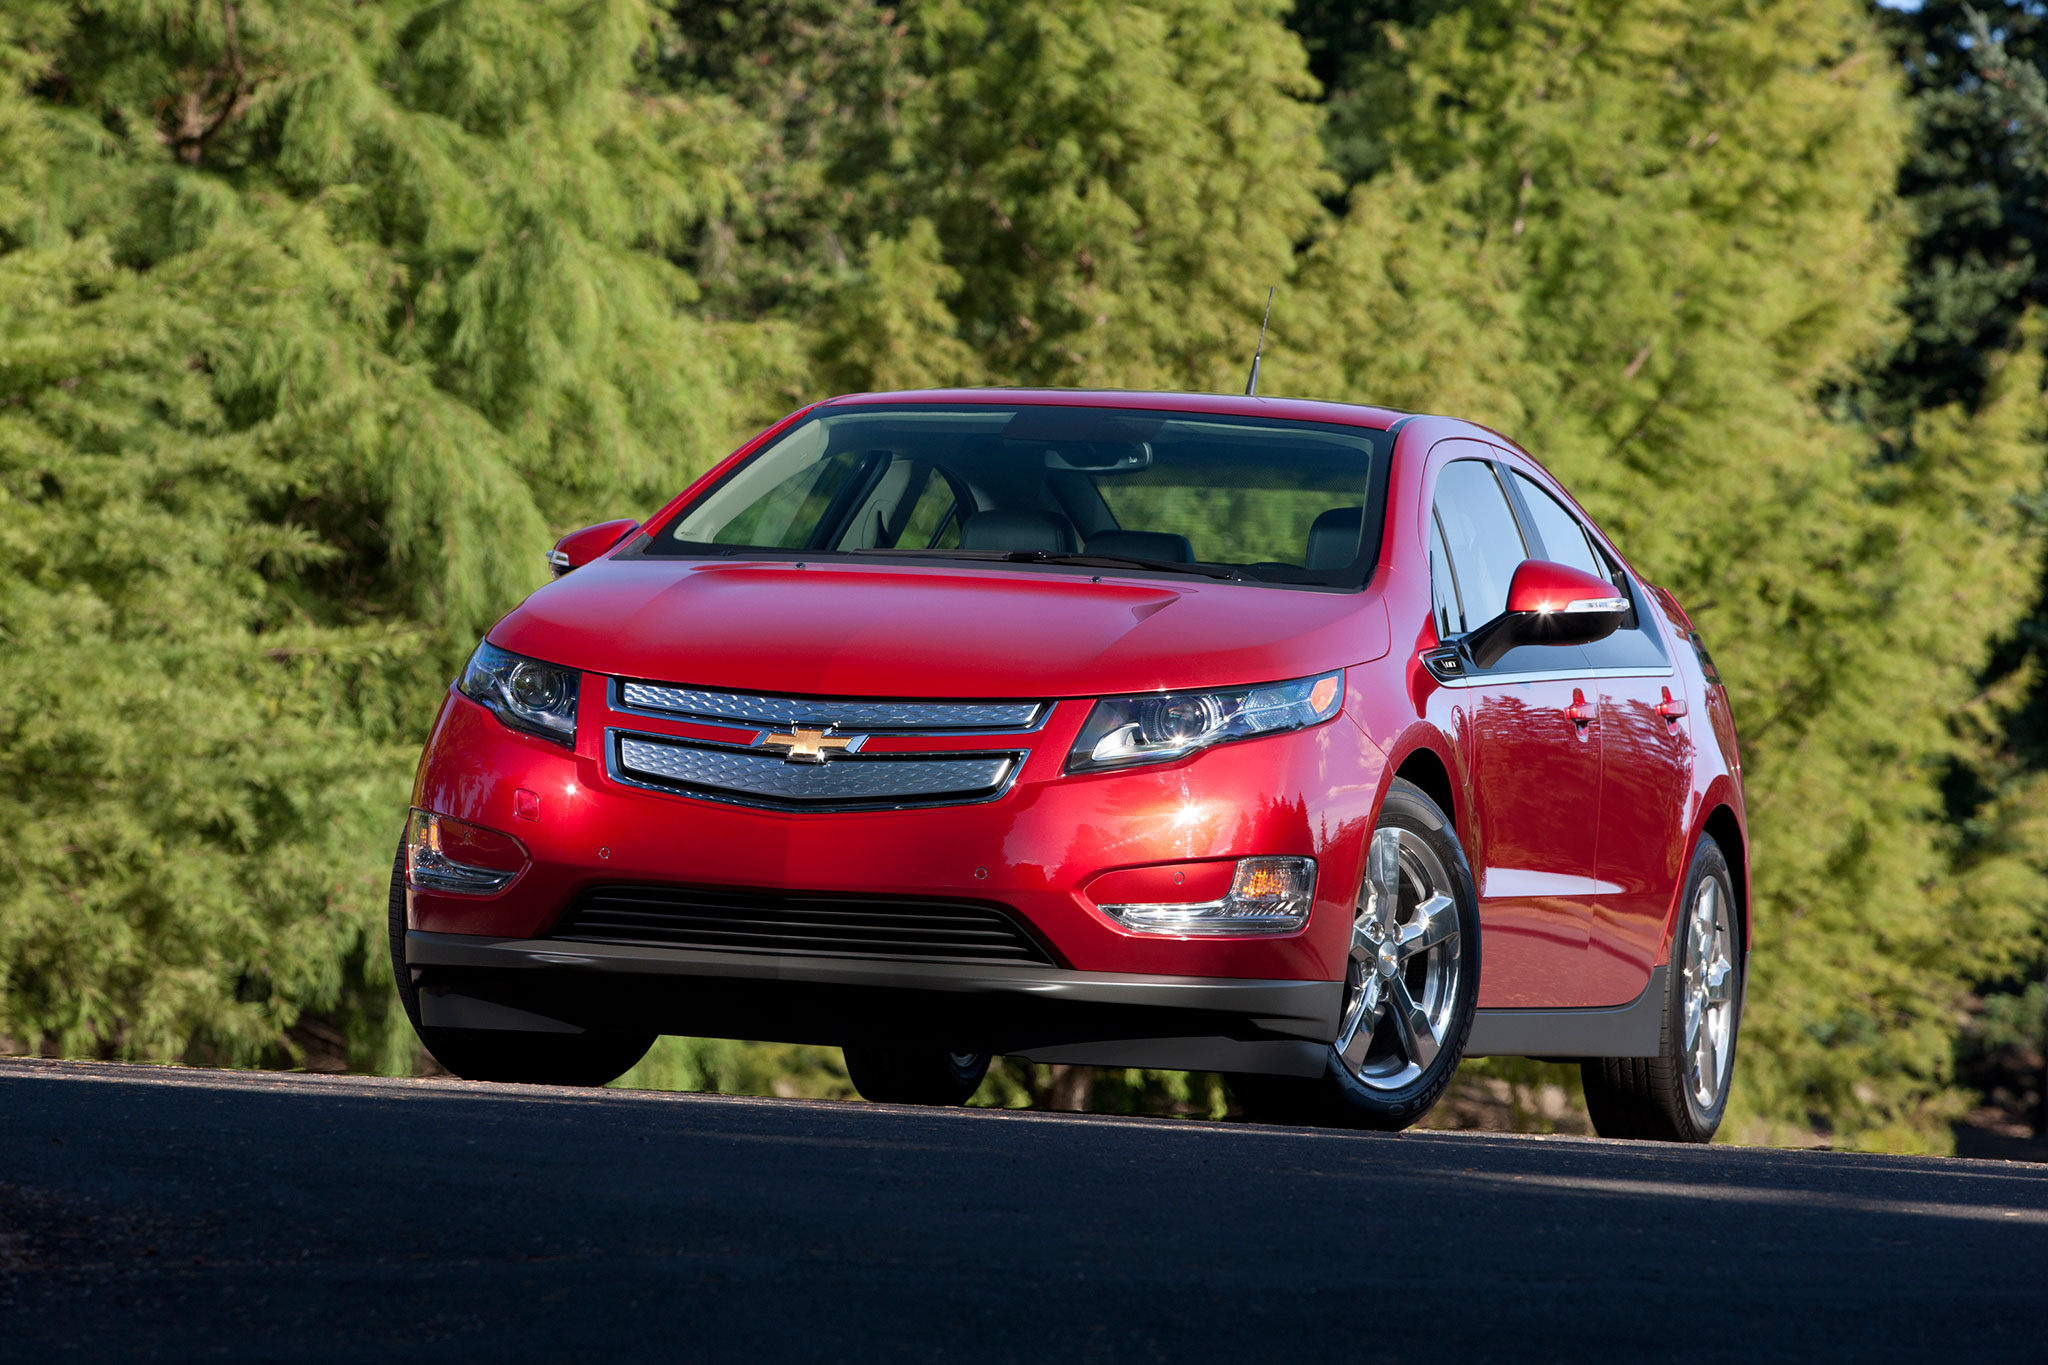 2014 Chevrolet Volt Front View Low1